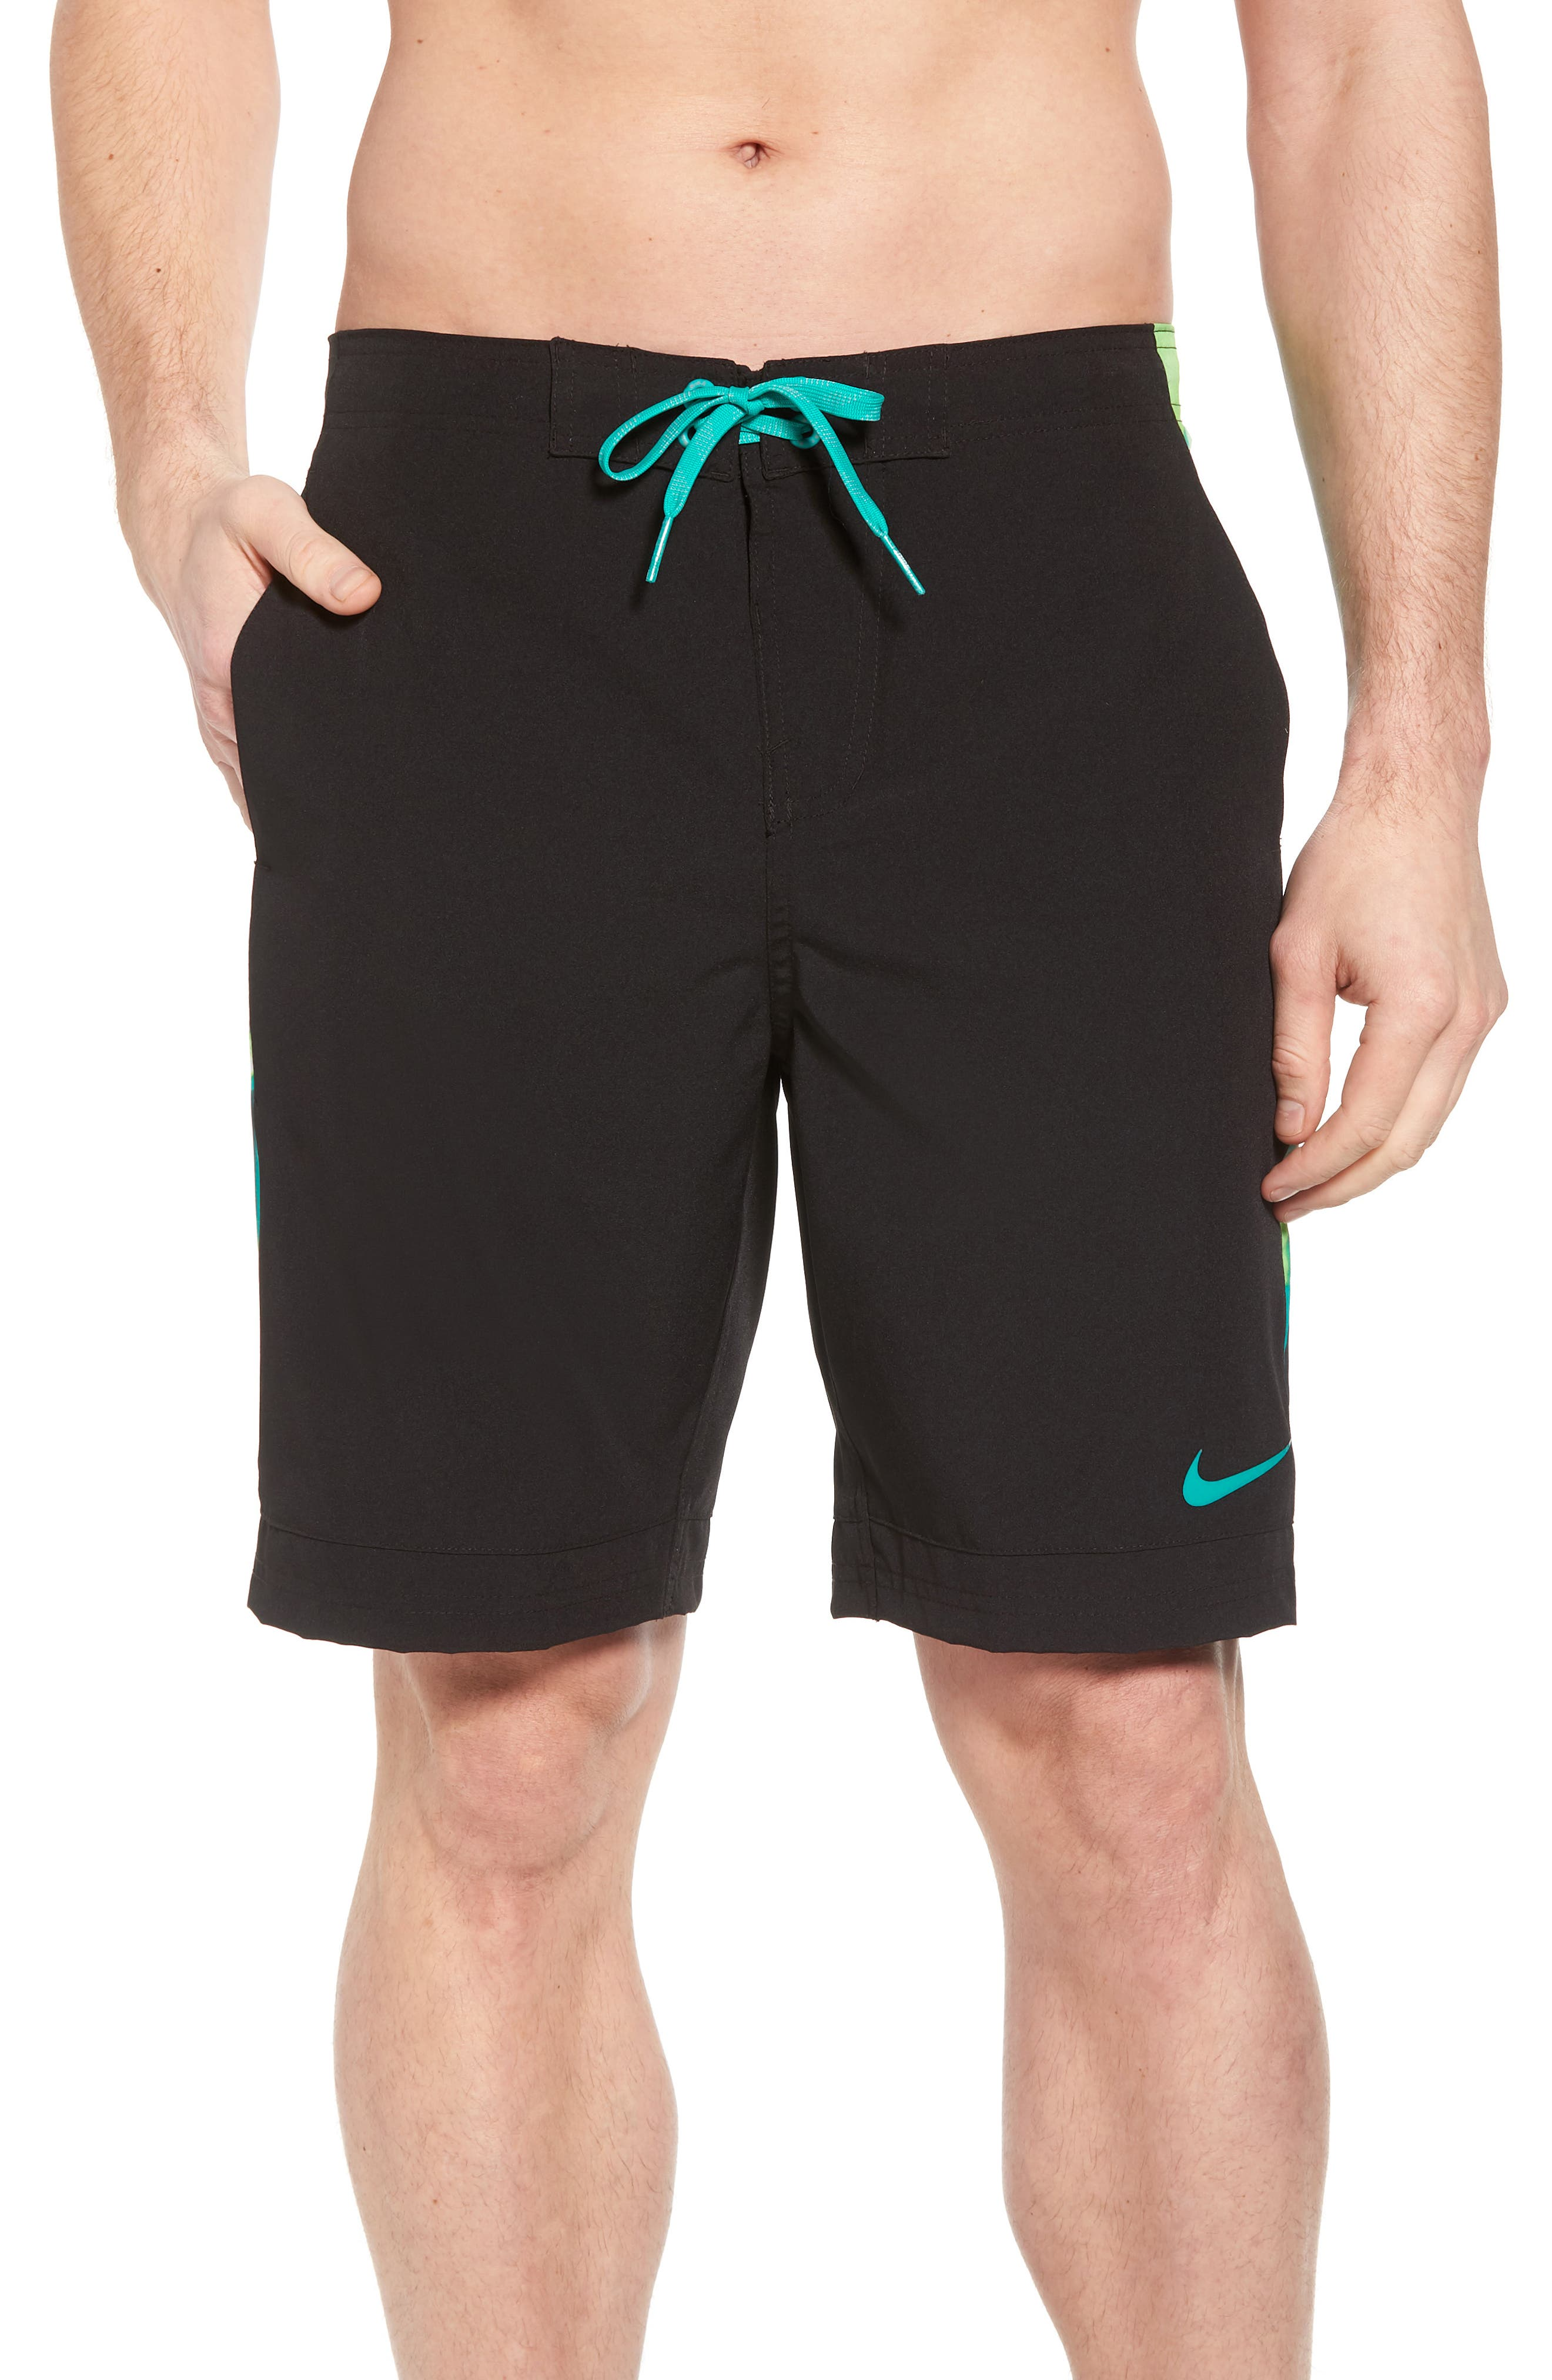 Racer Board Shorts,                             Main thumbnail 1, color,                             Black